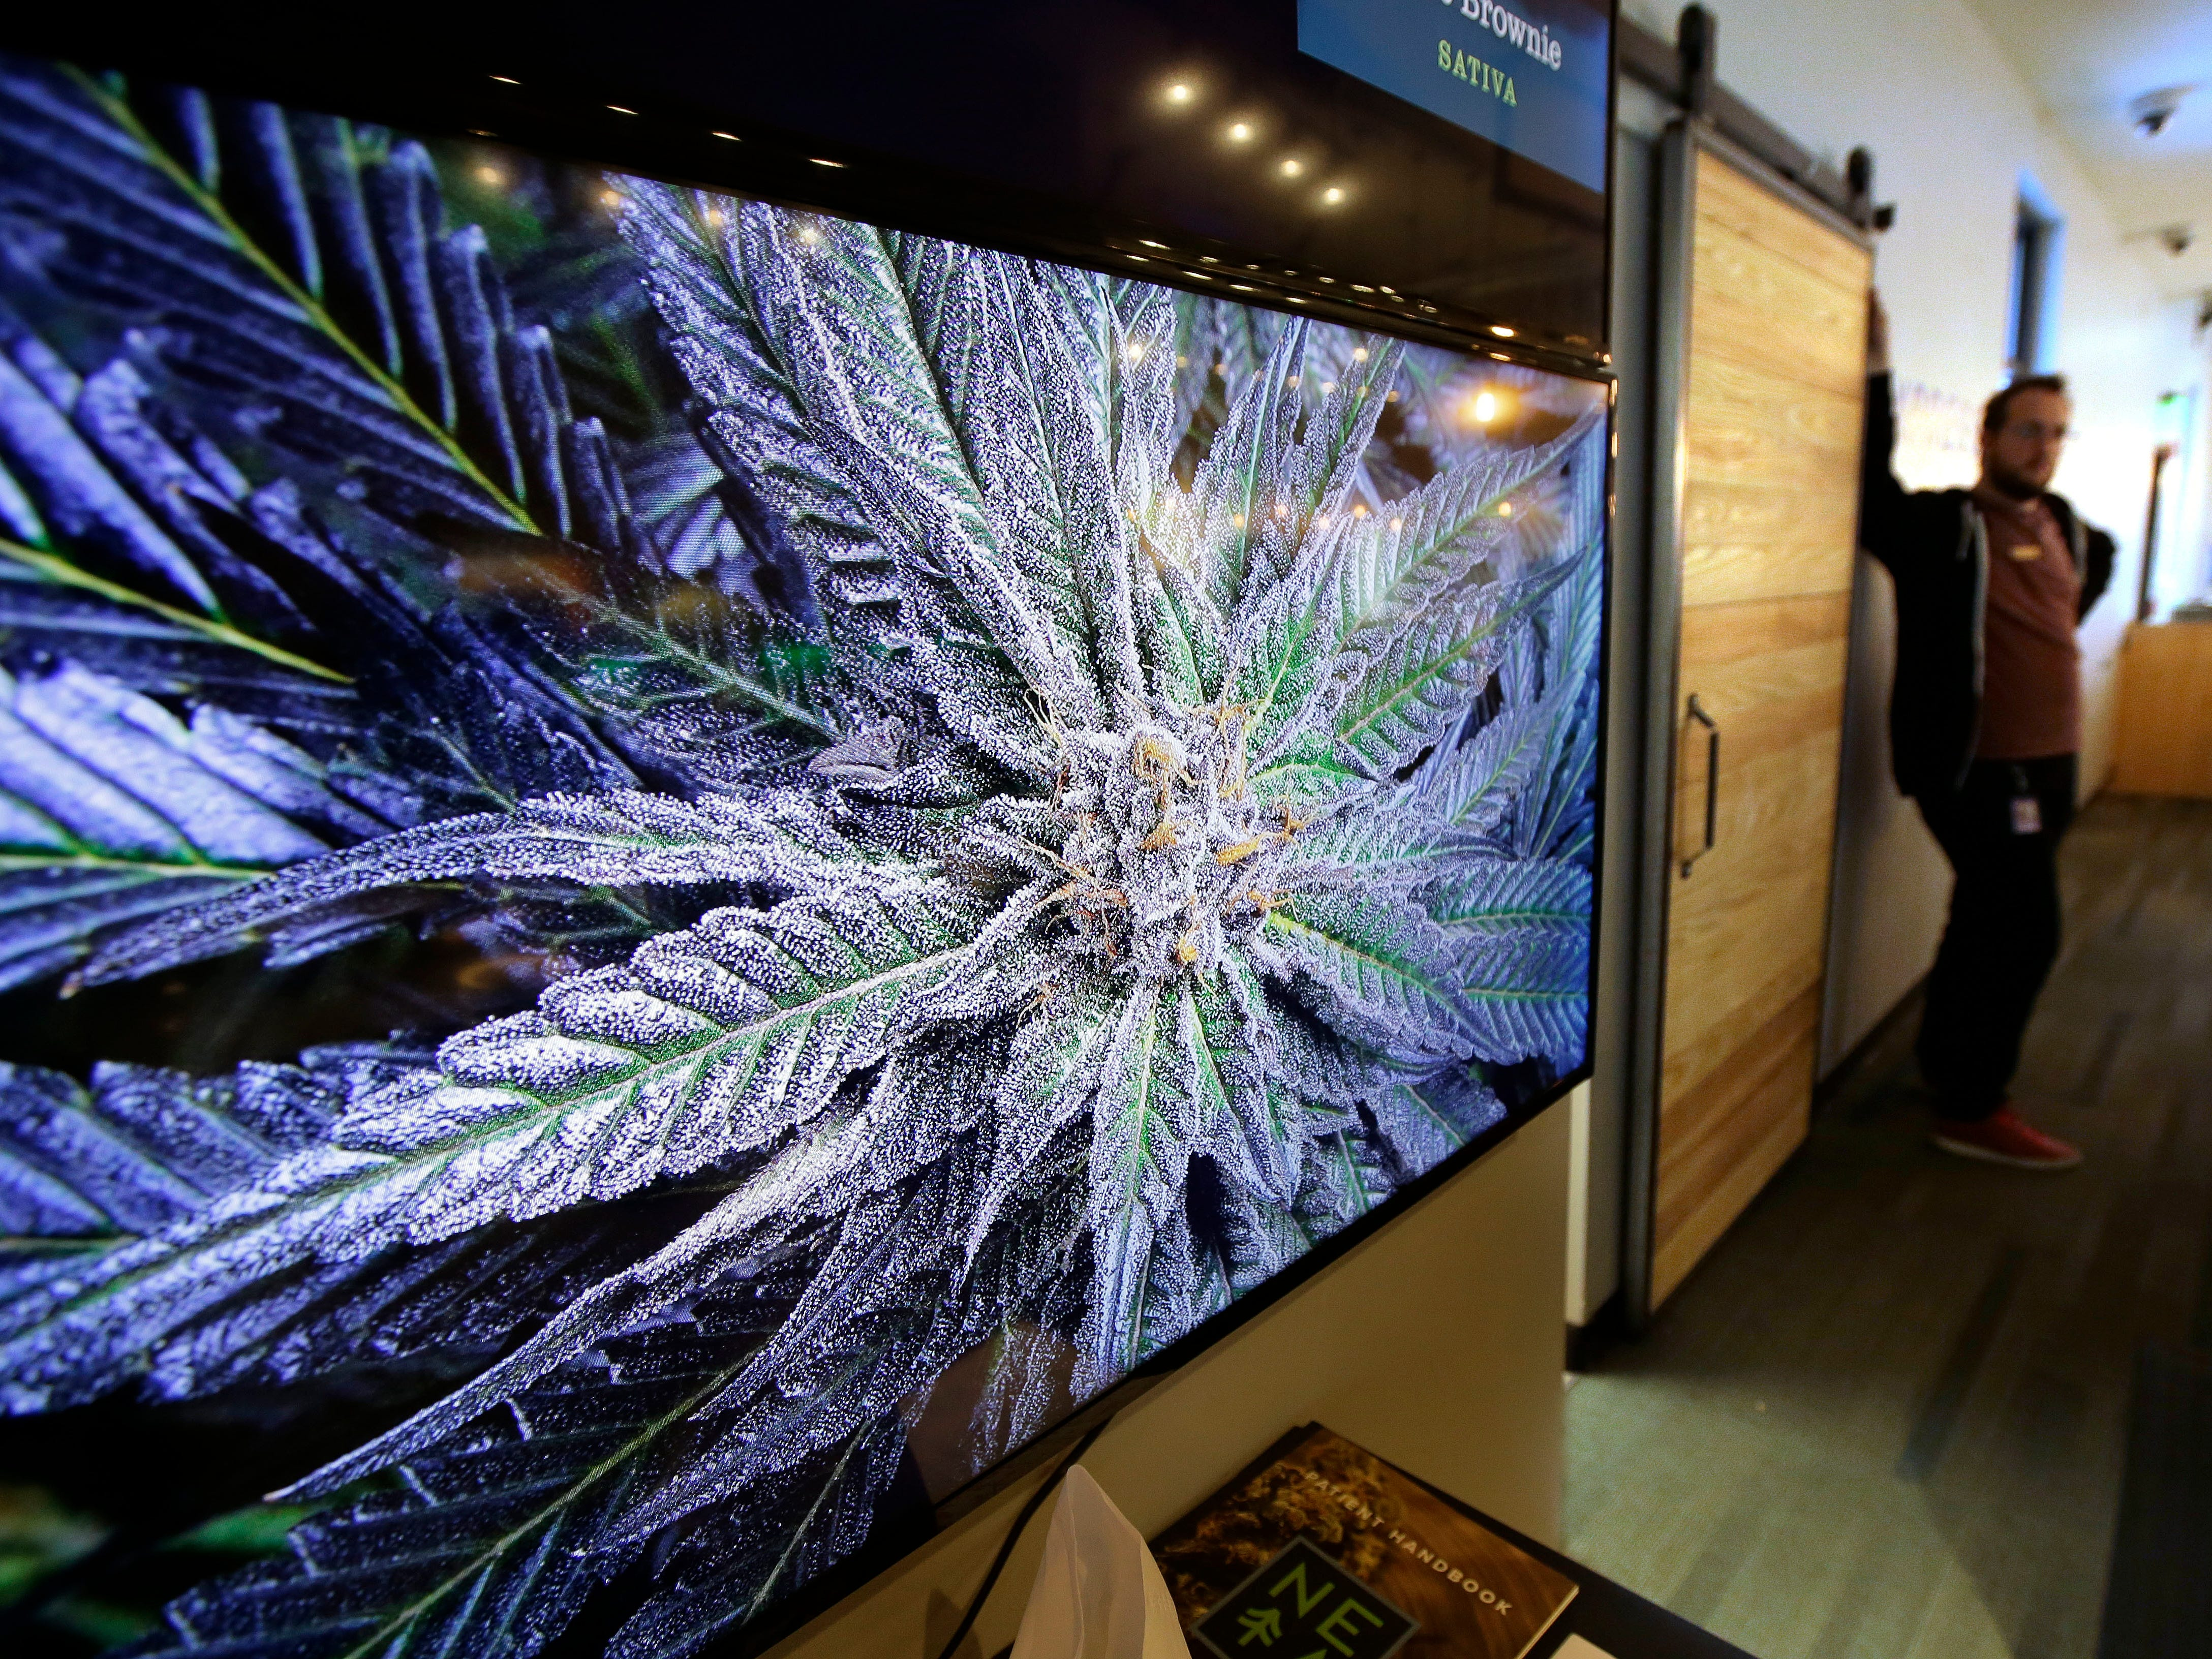 A cannabis plant is displayed on a screen at New England Treatment Access medical marijuana dispensary, in Northampton, Mass, Oct. 17, 2018. New England Treatment Access, and another store in Leicester, Mass., have been given the green light to begin selling recreational pot on Tuesday, Nov. 20, making them the first commercial pot shops in the eastern United States.